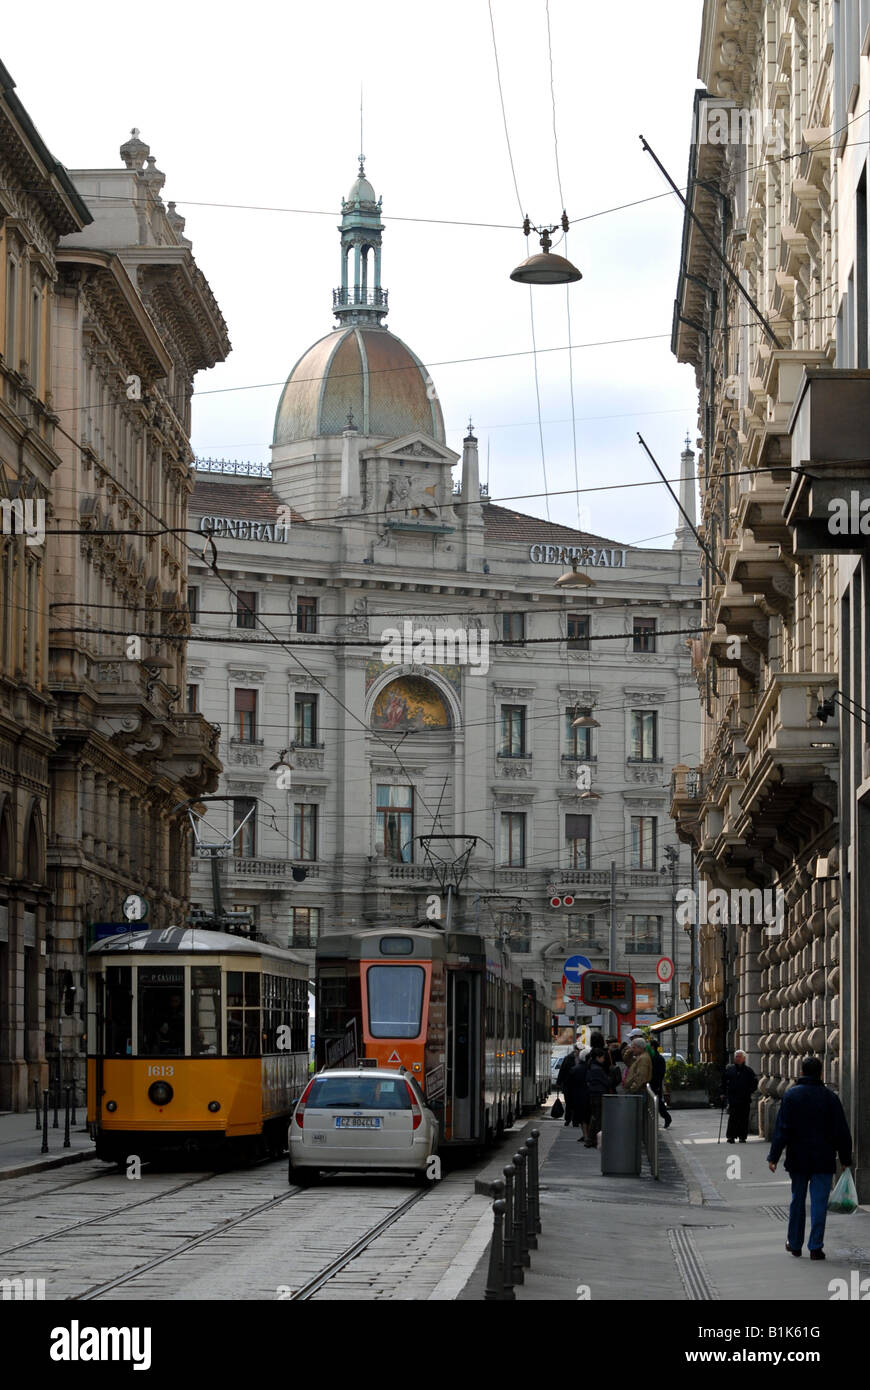 Piazza Cordusio seen from Via Broletto, Milano, Lombardy, Italy. - Stock Image